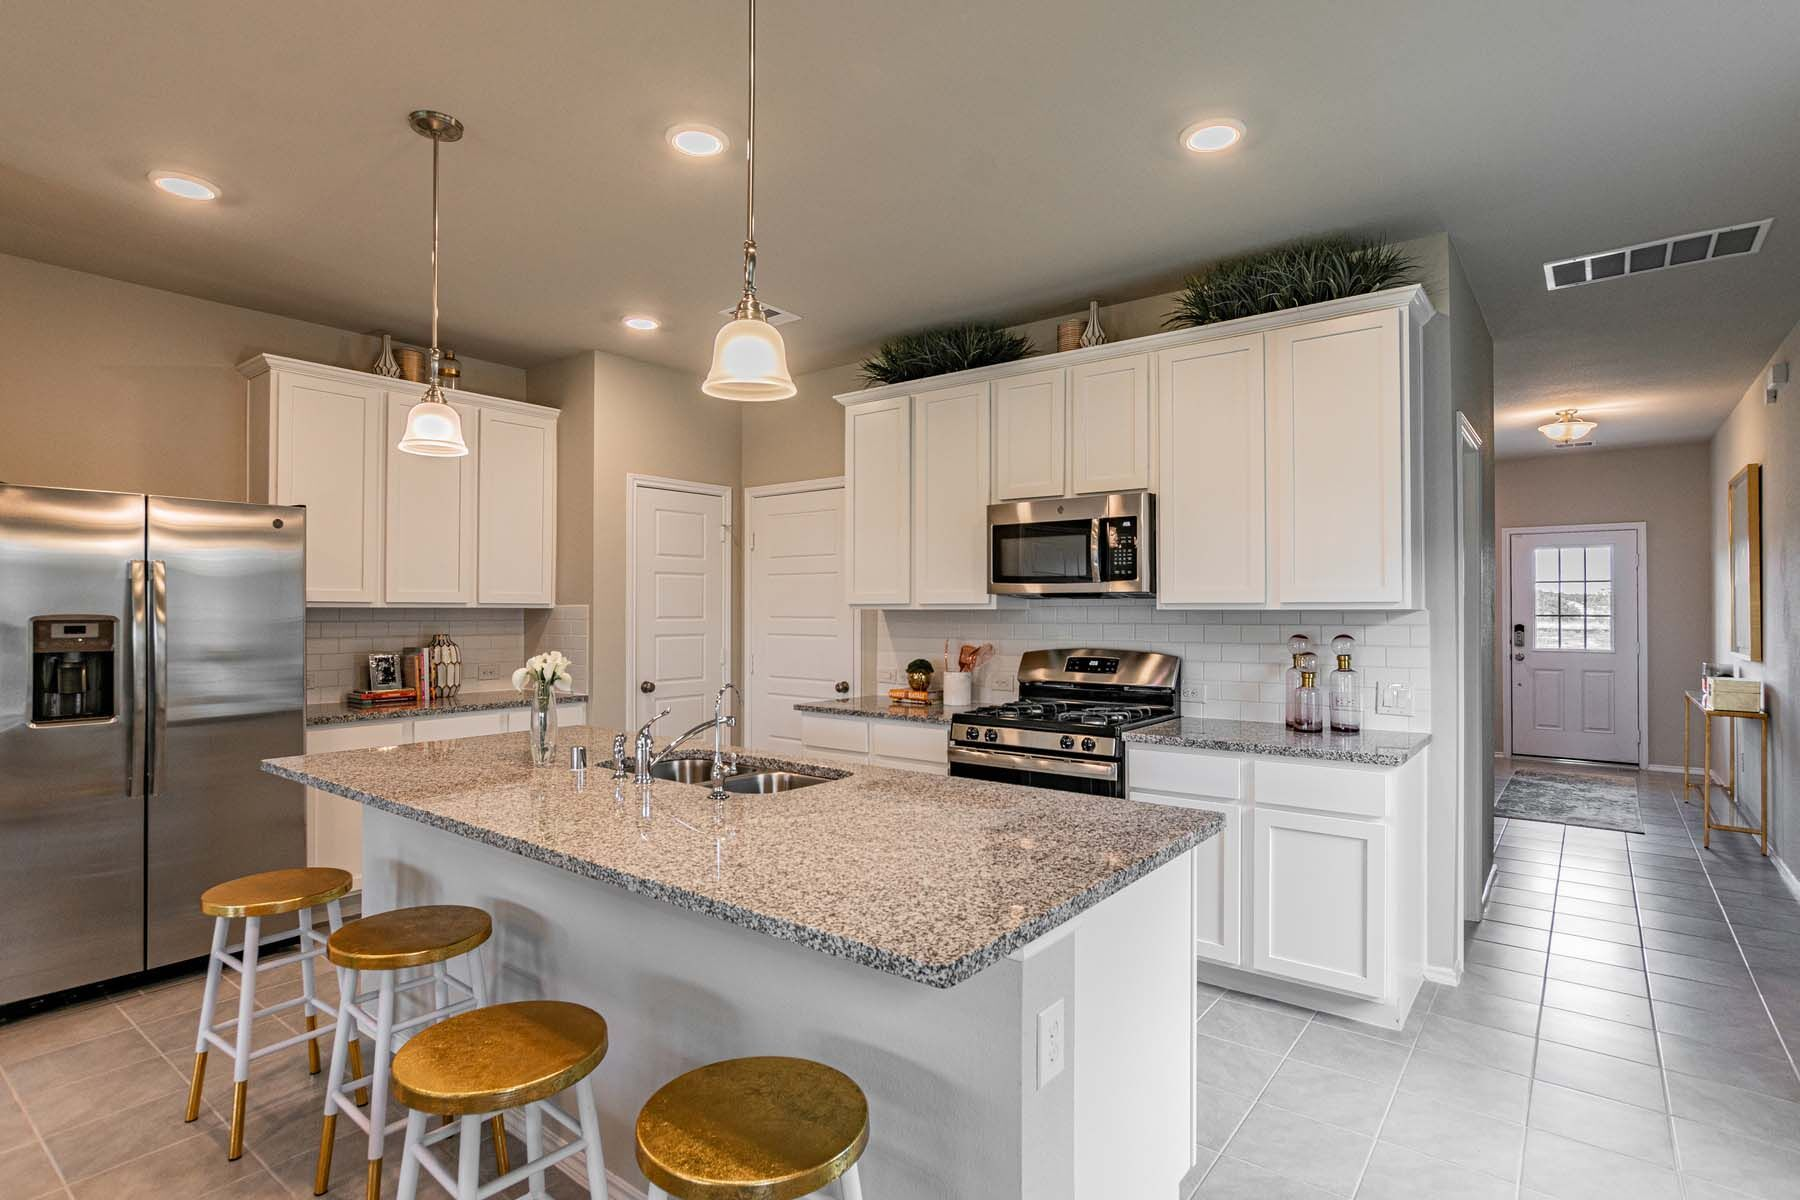 Kitchen featured in the Dogwood By M/I Homes in Houston, TX